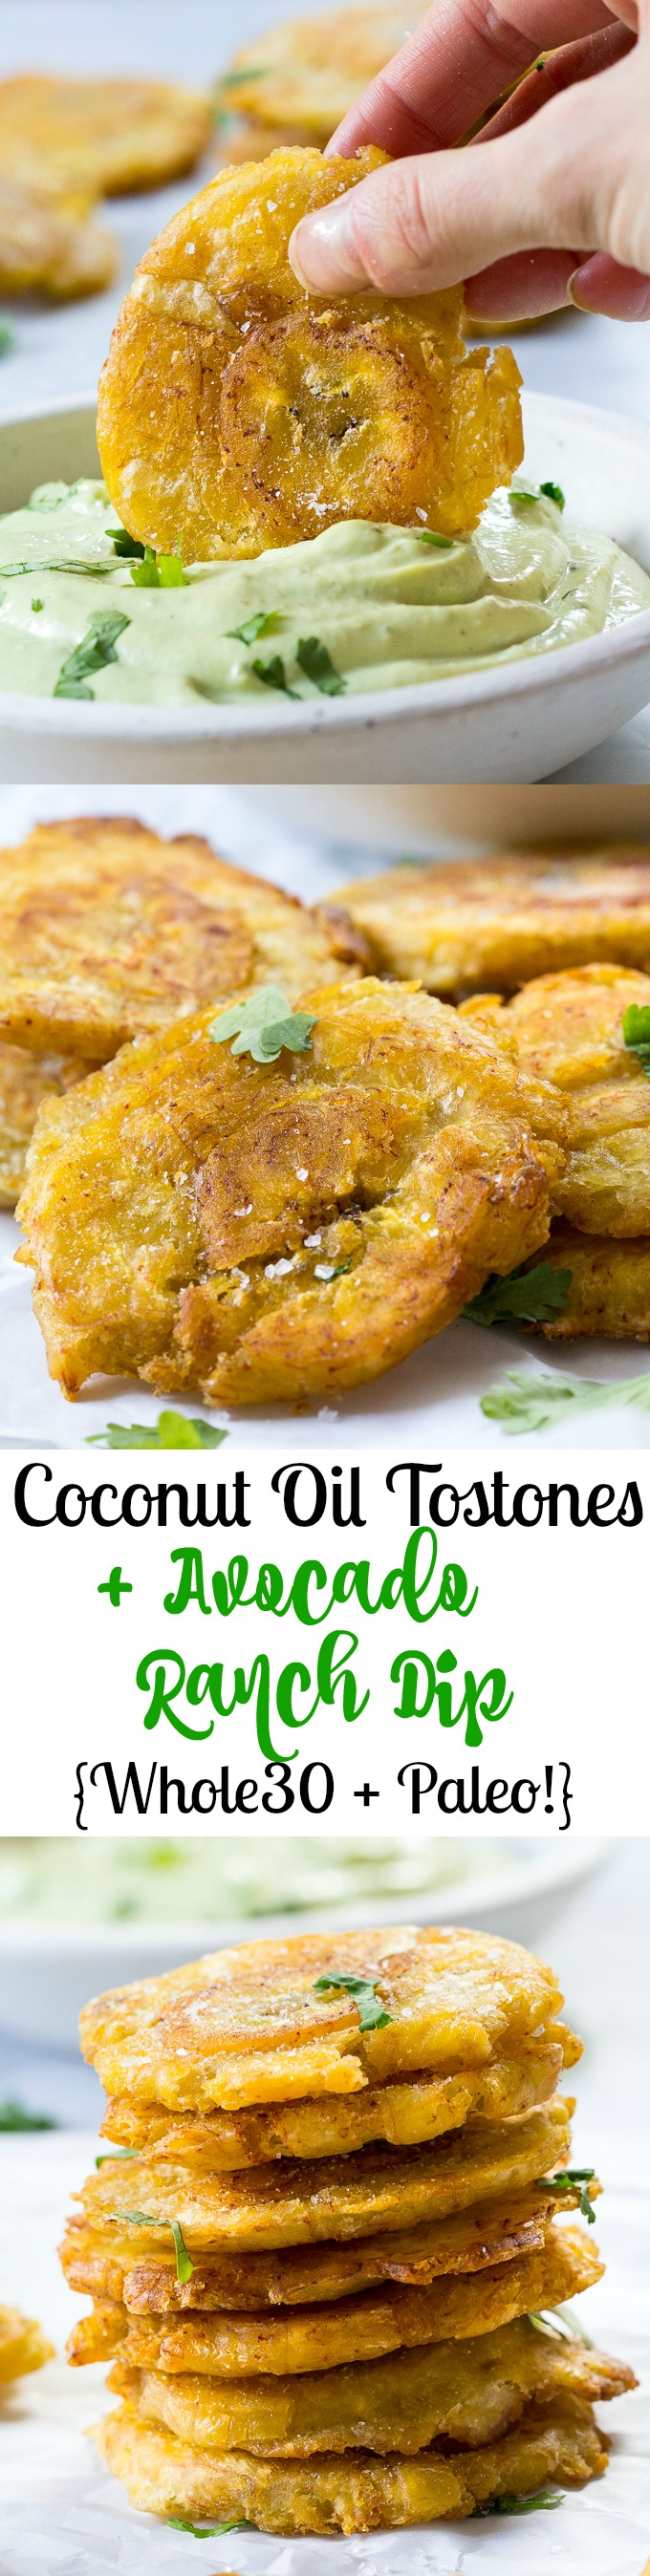 Paleo Tostones with Avocado Ranch Dip (Whole30) #avocadoranch